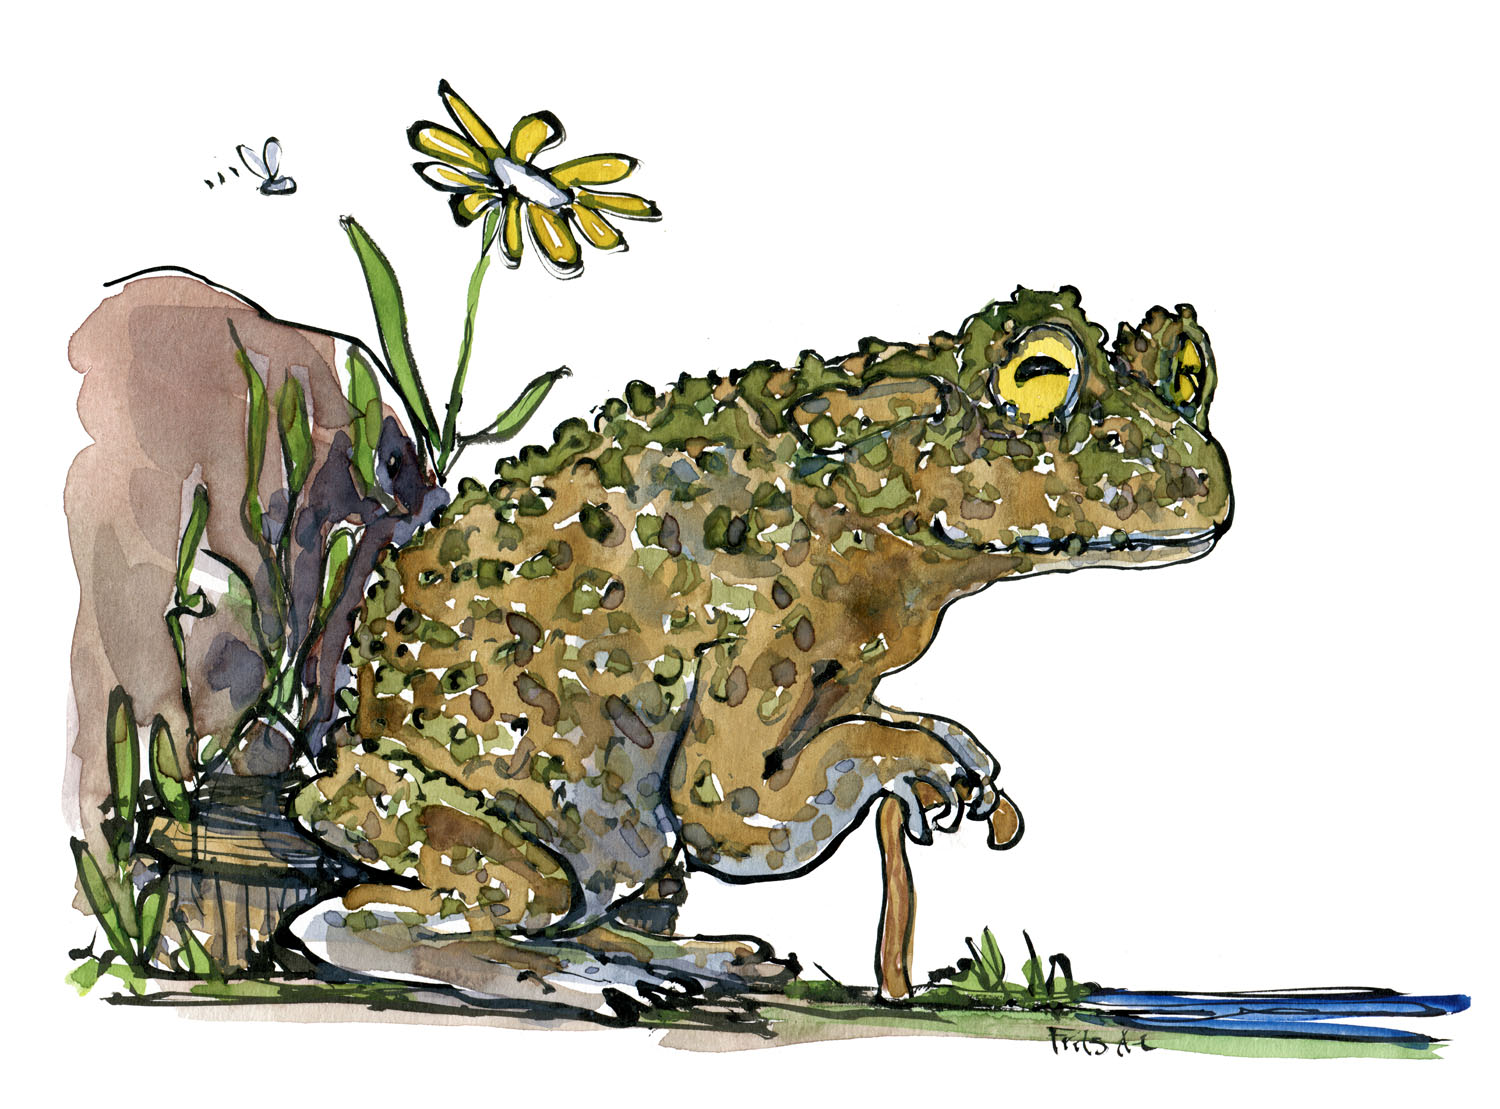 old-toad-frog-watercolor-sitting-on-bench-by-frits-ahlefeldt